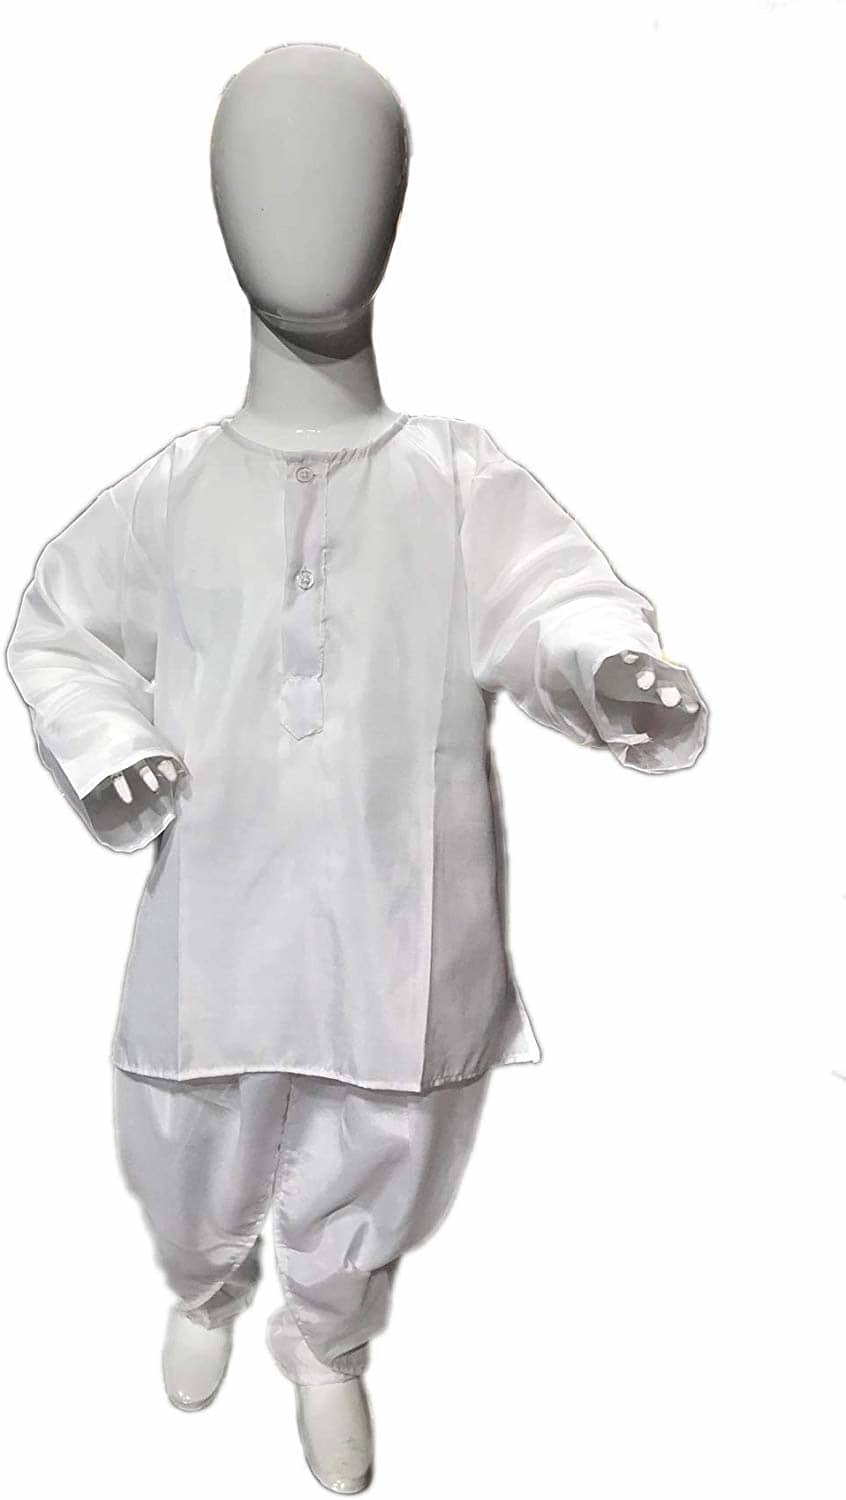 CHANDU KI DUKAN White Dhoti Kurta 2-3 YRS Traditional Costume  1)CHANDU KI DUKAN WHITE DHOTI KURTA INCLUDES EVERTHING A CHILD NEEDS. 2)Material: made of very soft & breathable fabric. 3)COSTUME FOR SCHOOL ANNUAL FUNCTION/THEME PARTY/COMPETITION AND STAGE SHOWS  https://www.amazon.in/dp/B07YSKTT6H?ref=myi_title_dp